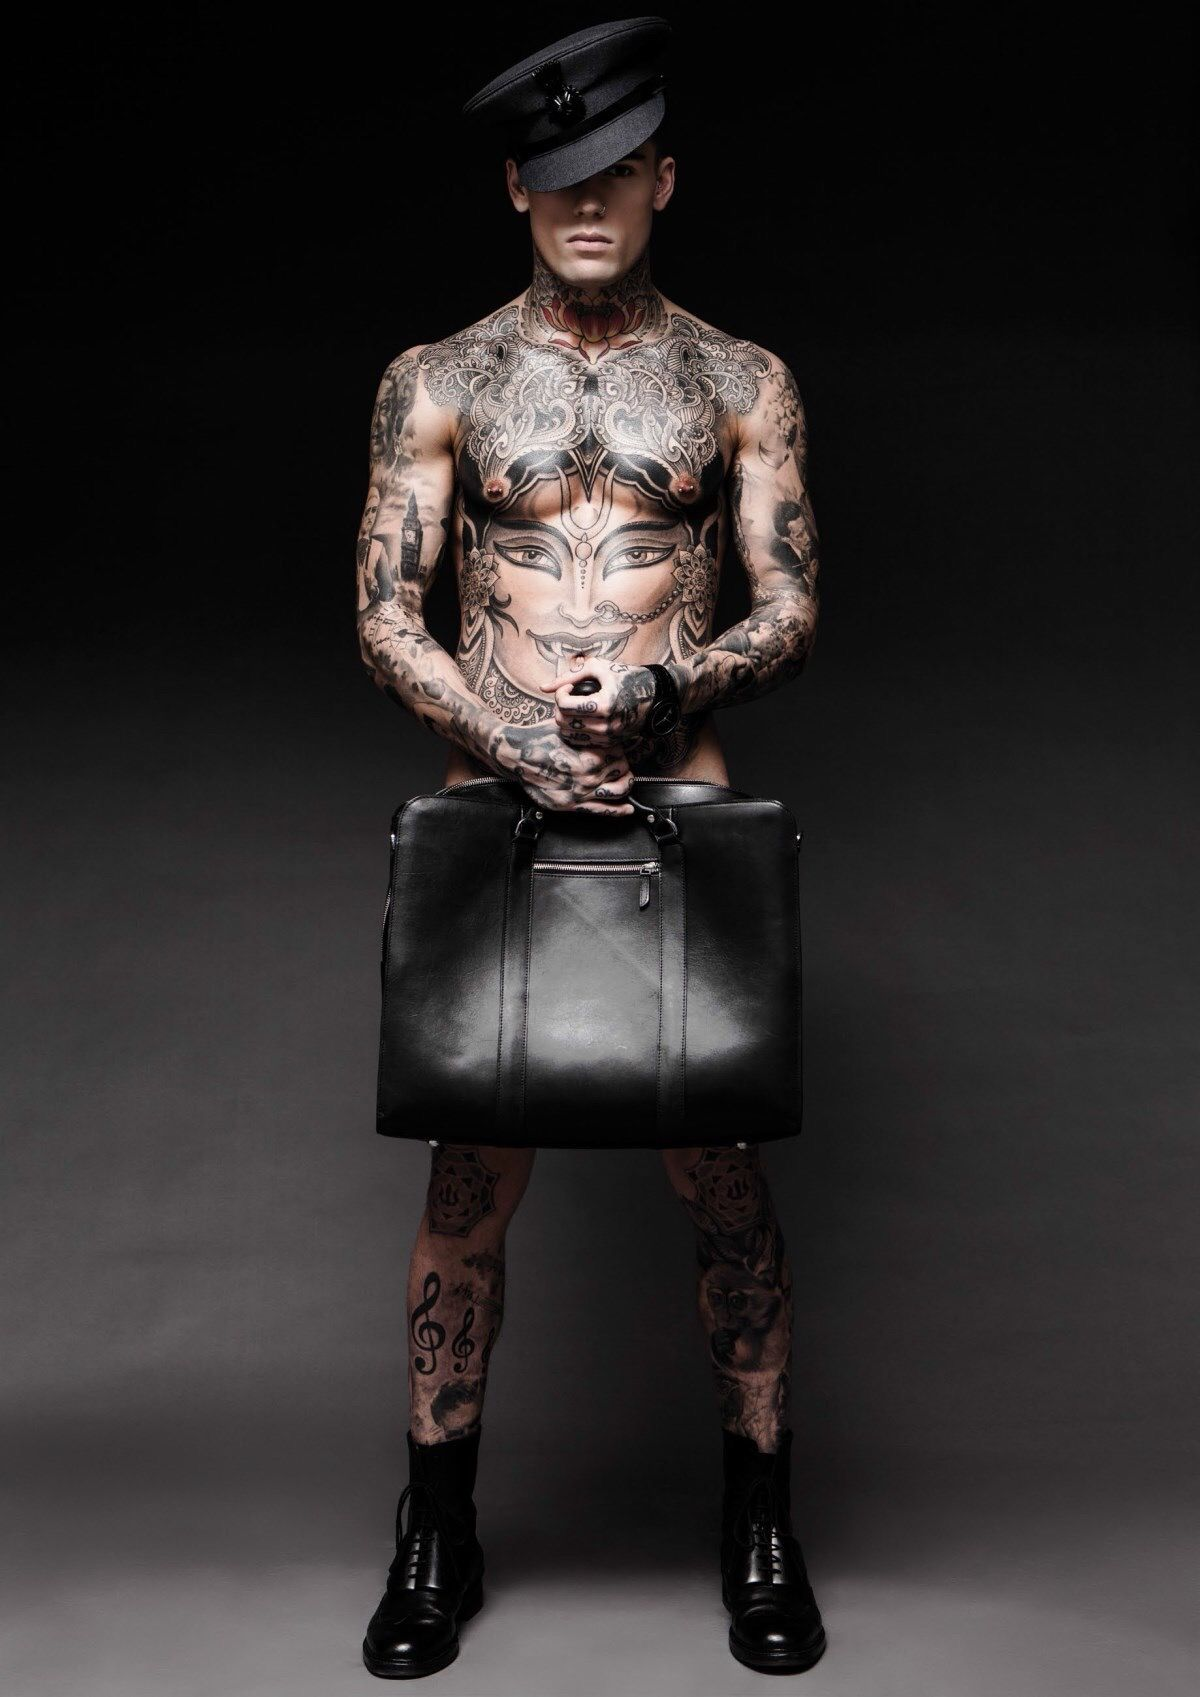 LICENSE TO THRILL: MODEL STEPHEN JAMES COVERS ADON